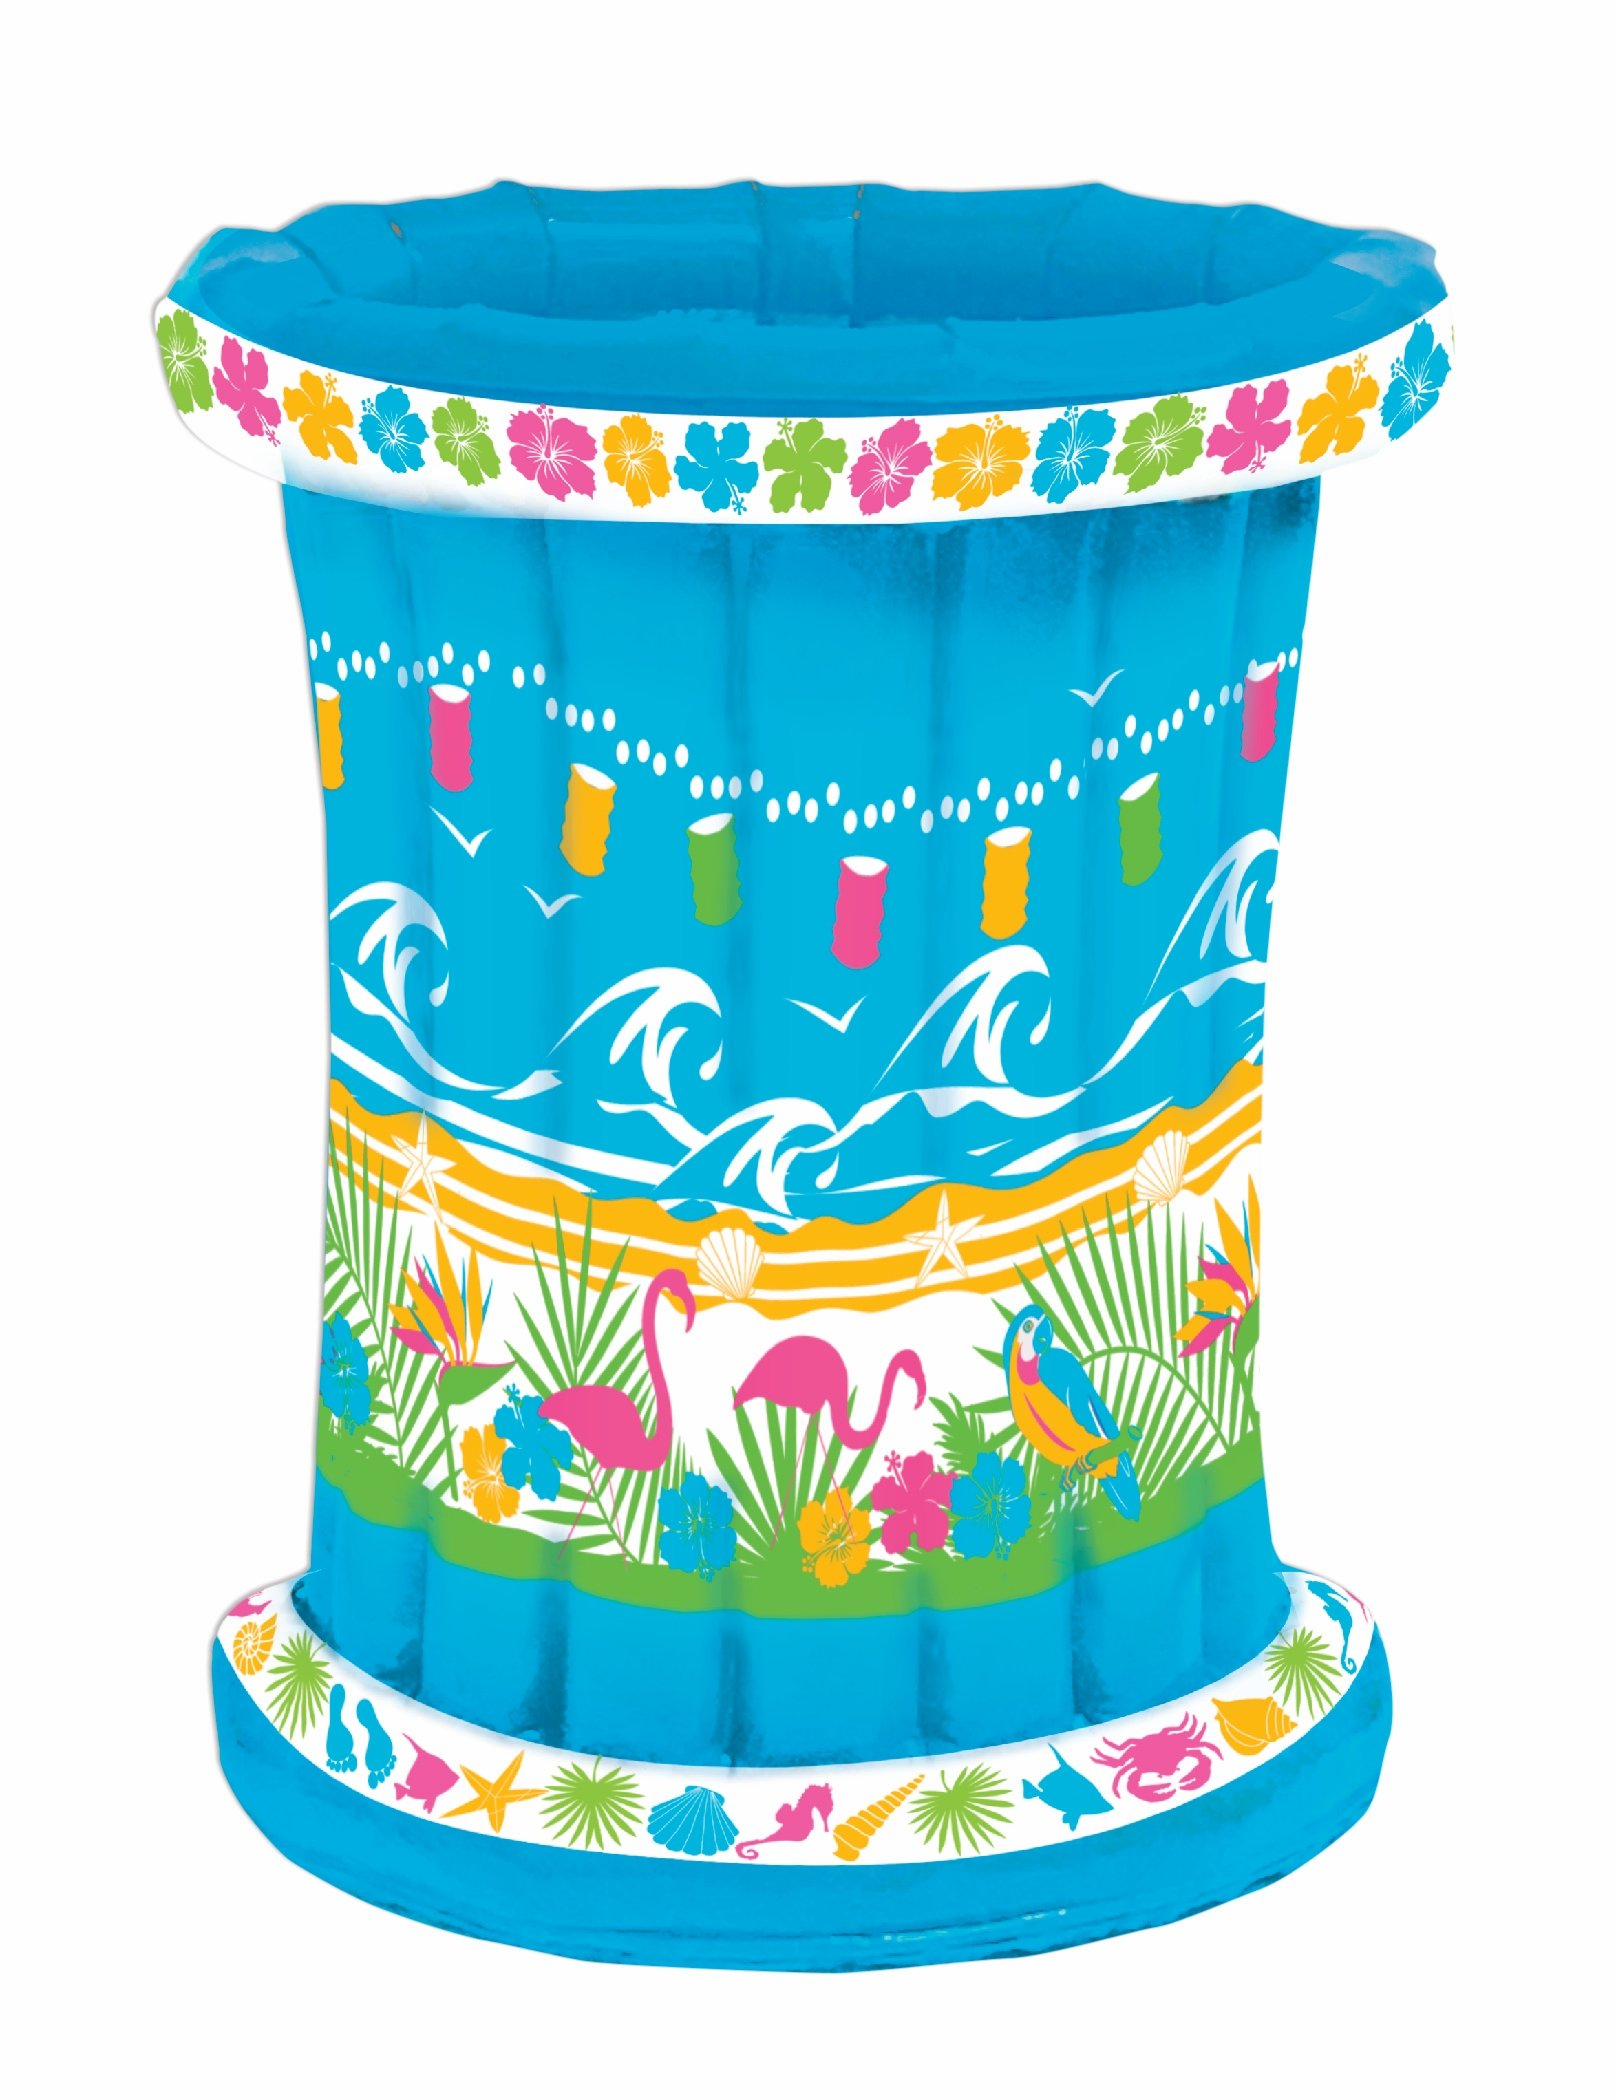 Inflatable Tropical Themed Drink Cooler for Outdoor Party - BBQ Picnic Pool Party Buffet Luau - Party Accessory - 22'' W. x 26'' H. by Express Novelties Online